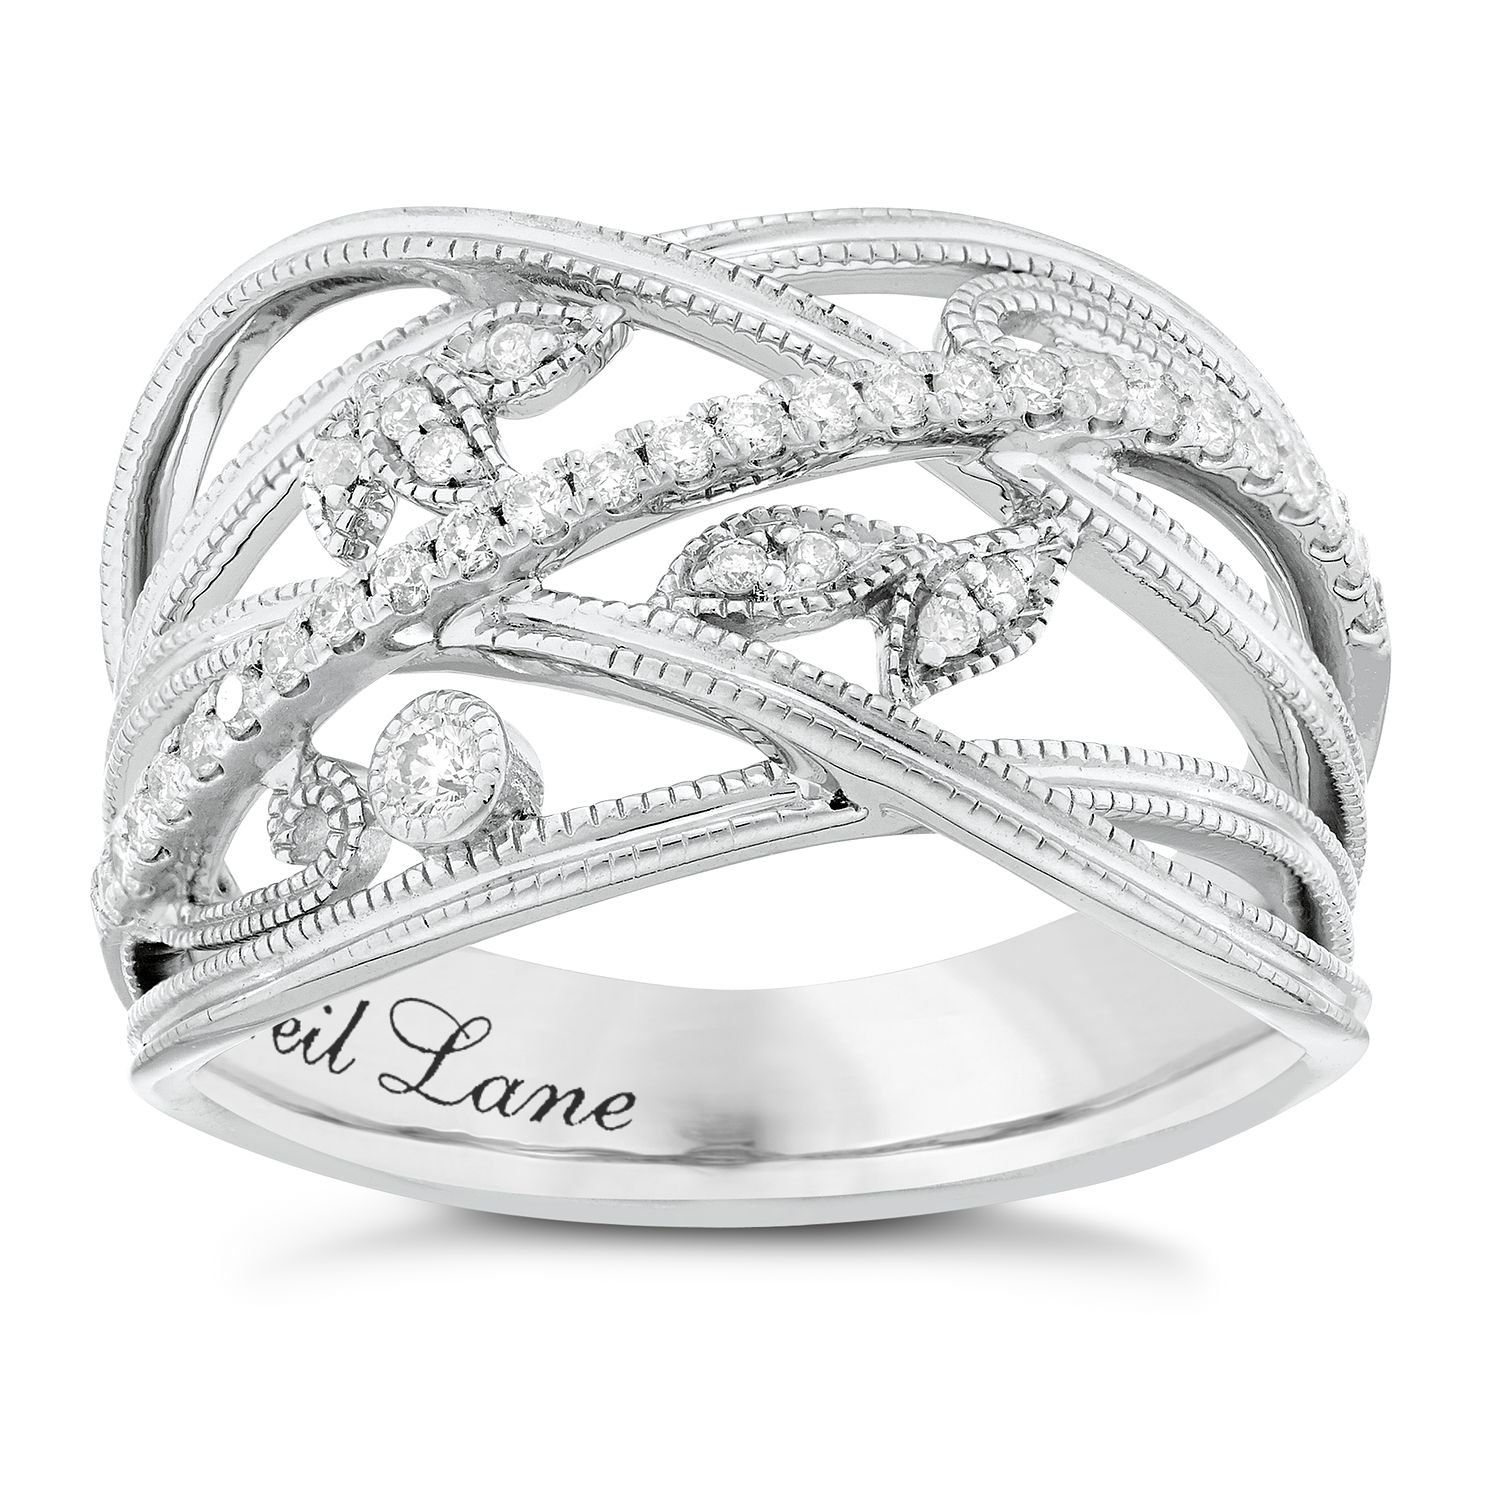 Neil Lane Designs Silver 1/5ct Diamond Leaf Band Ring - Product number 3832945